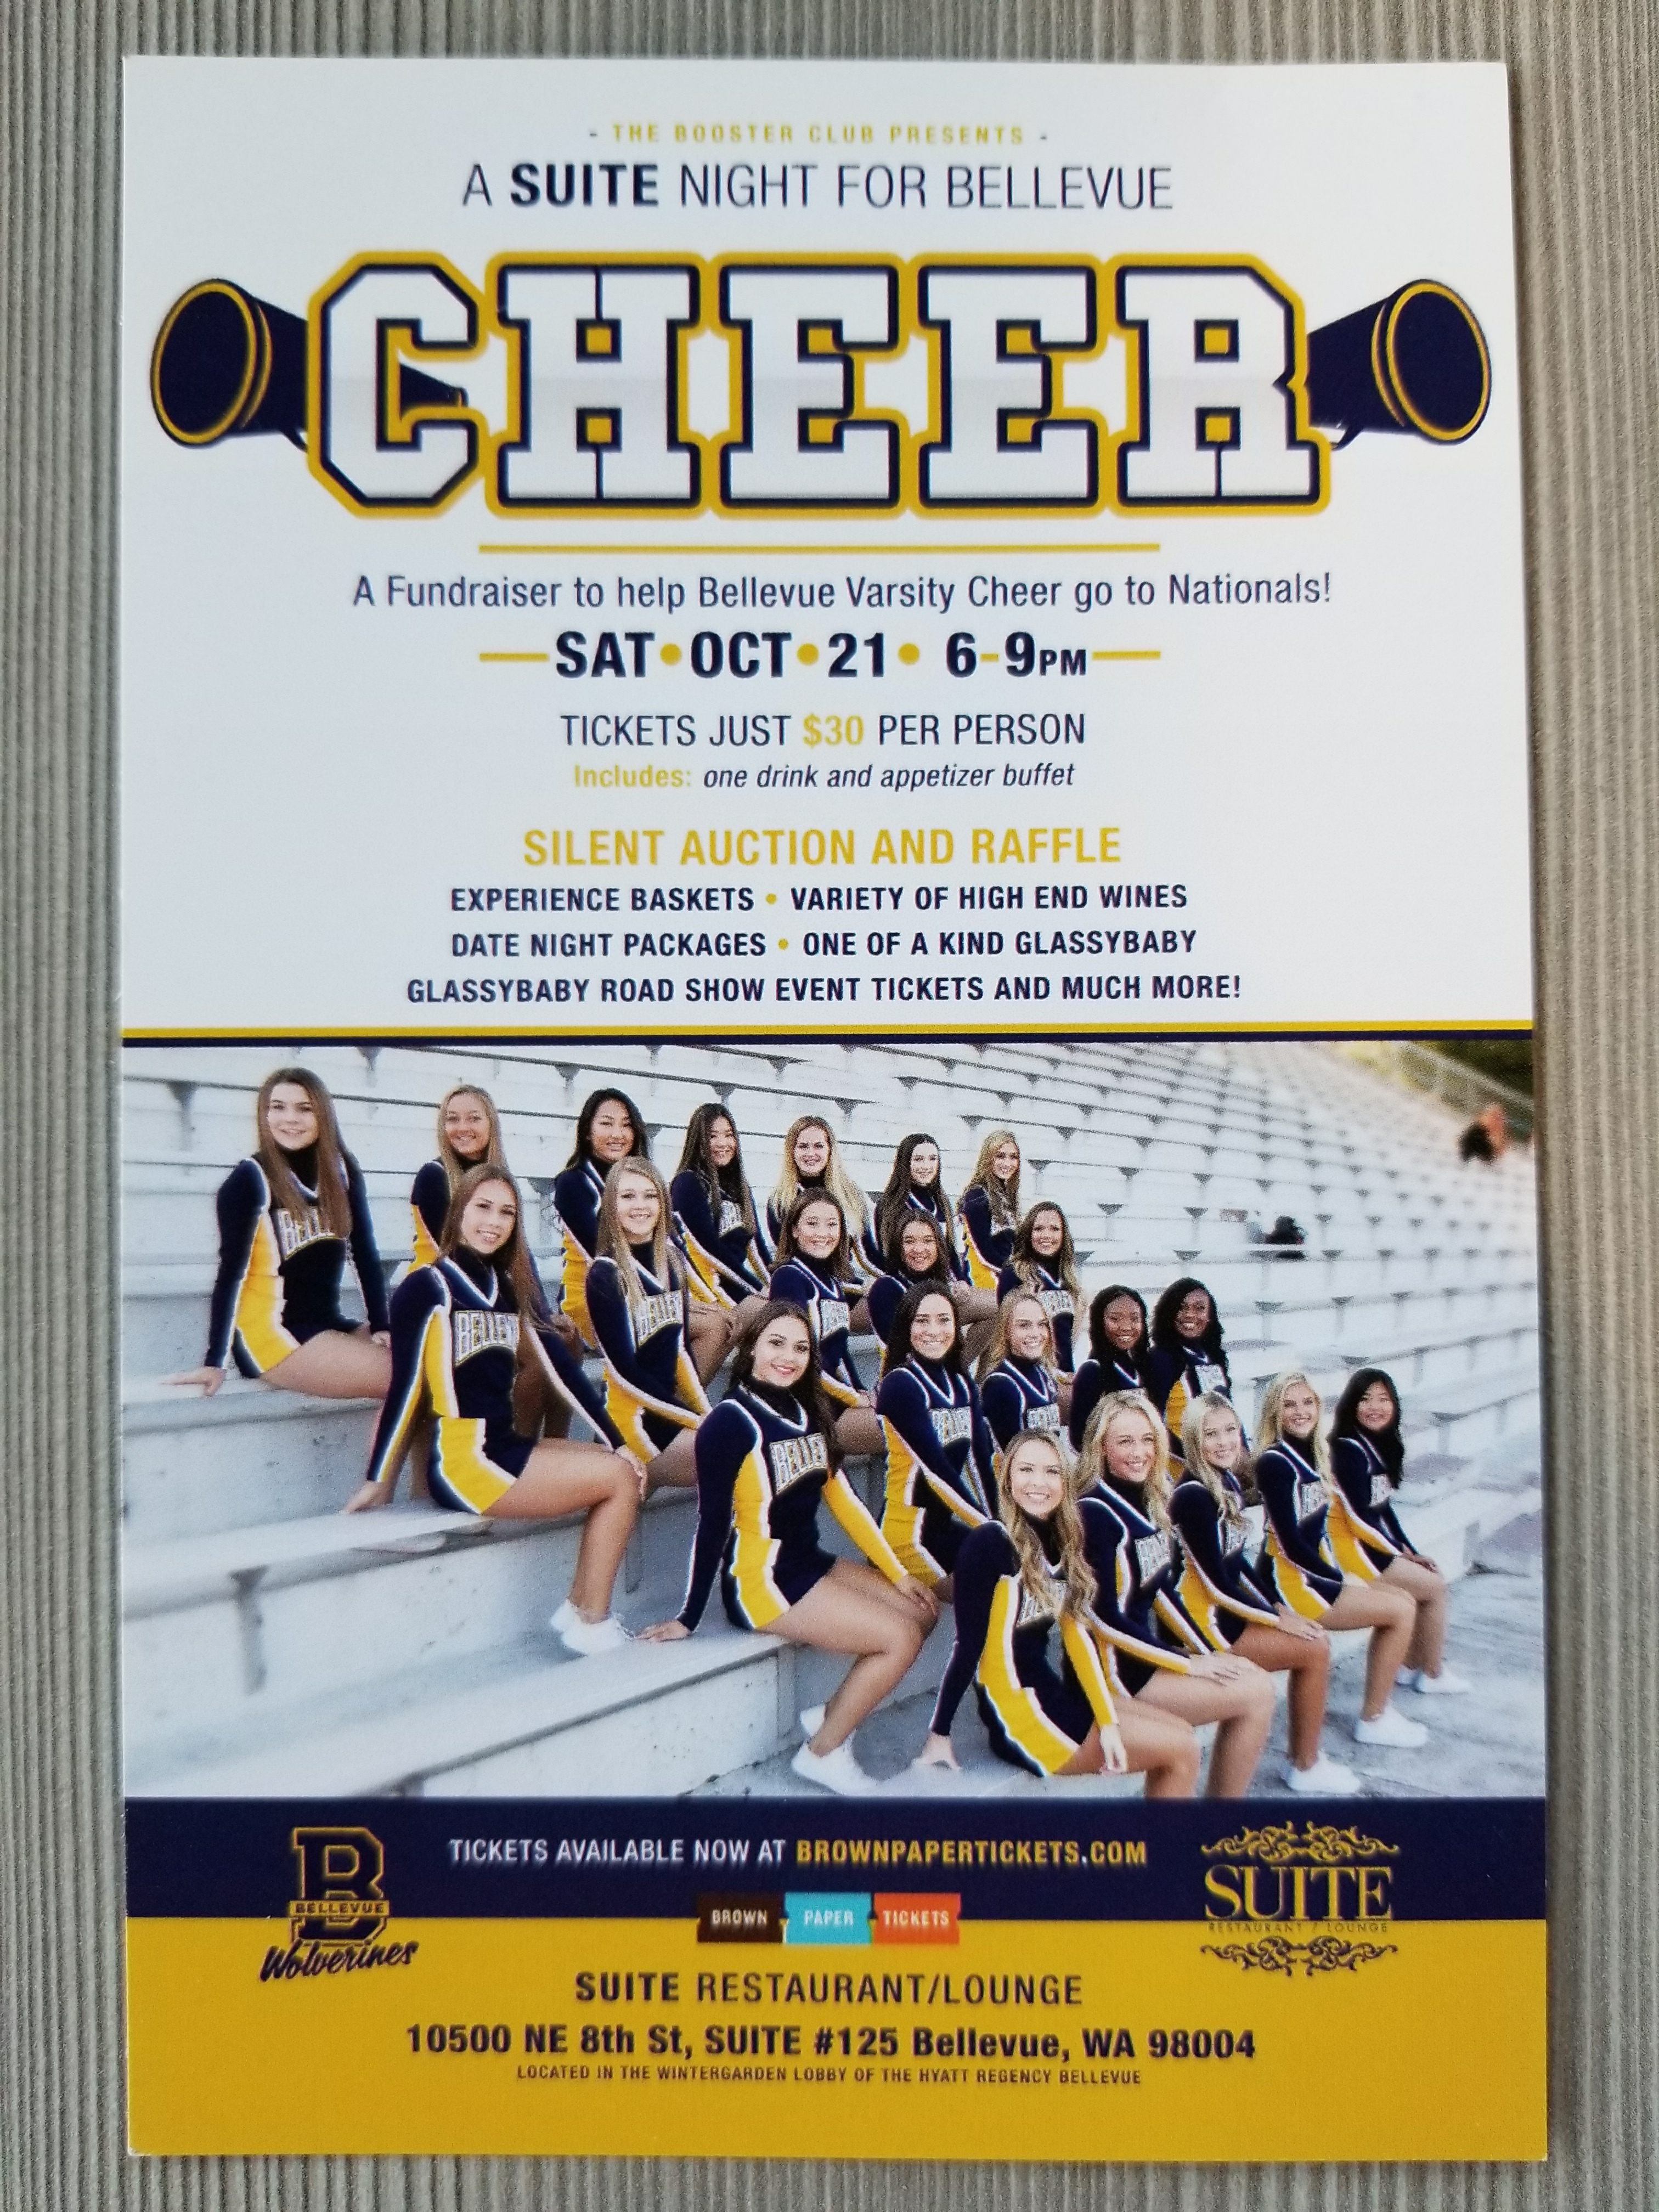 Bellevue high school cheerleader slient auction fundraiser at Suite Lounge